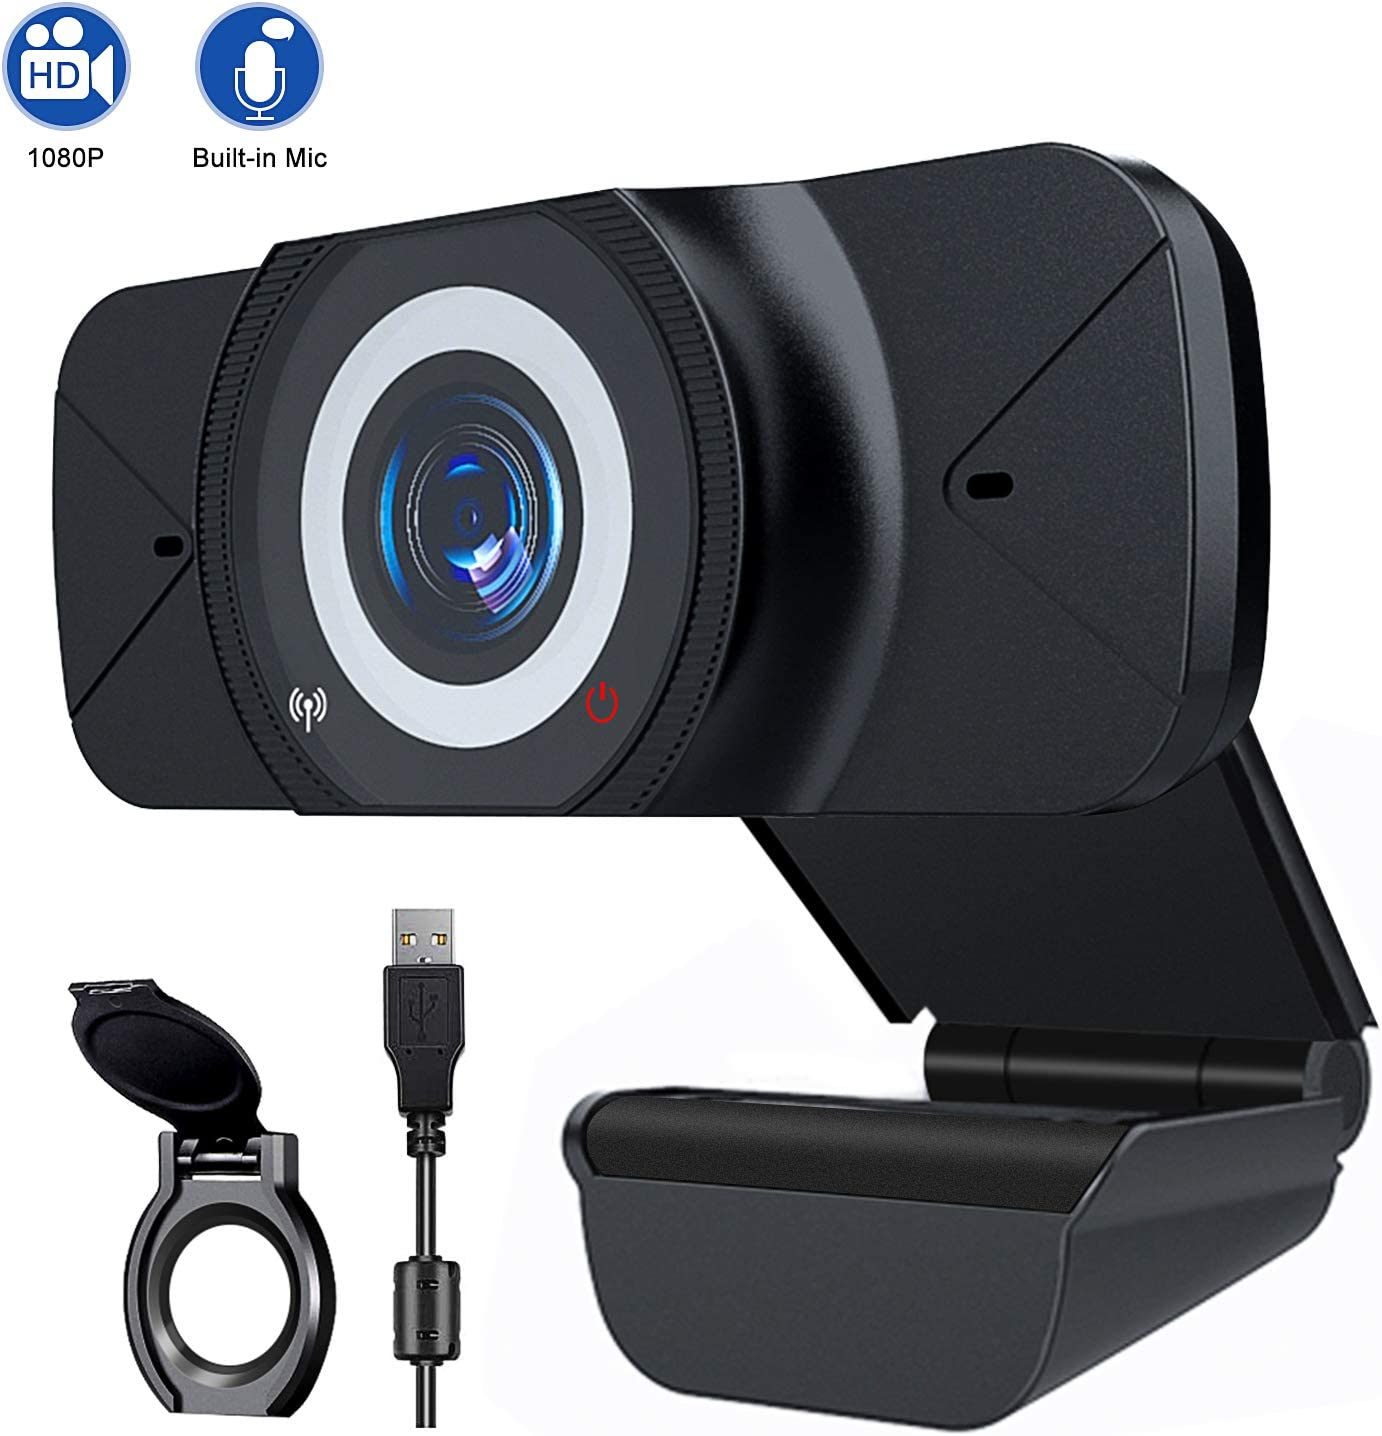 Webcam with Microphone Full HD 1080P USB Web Camera for Laptop PC, Multi-Compatible for Video Conferencing, Recording Streaming